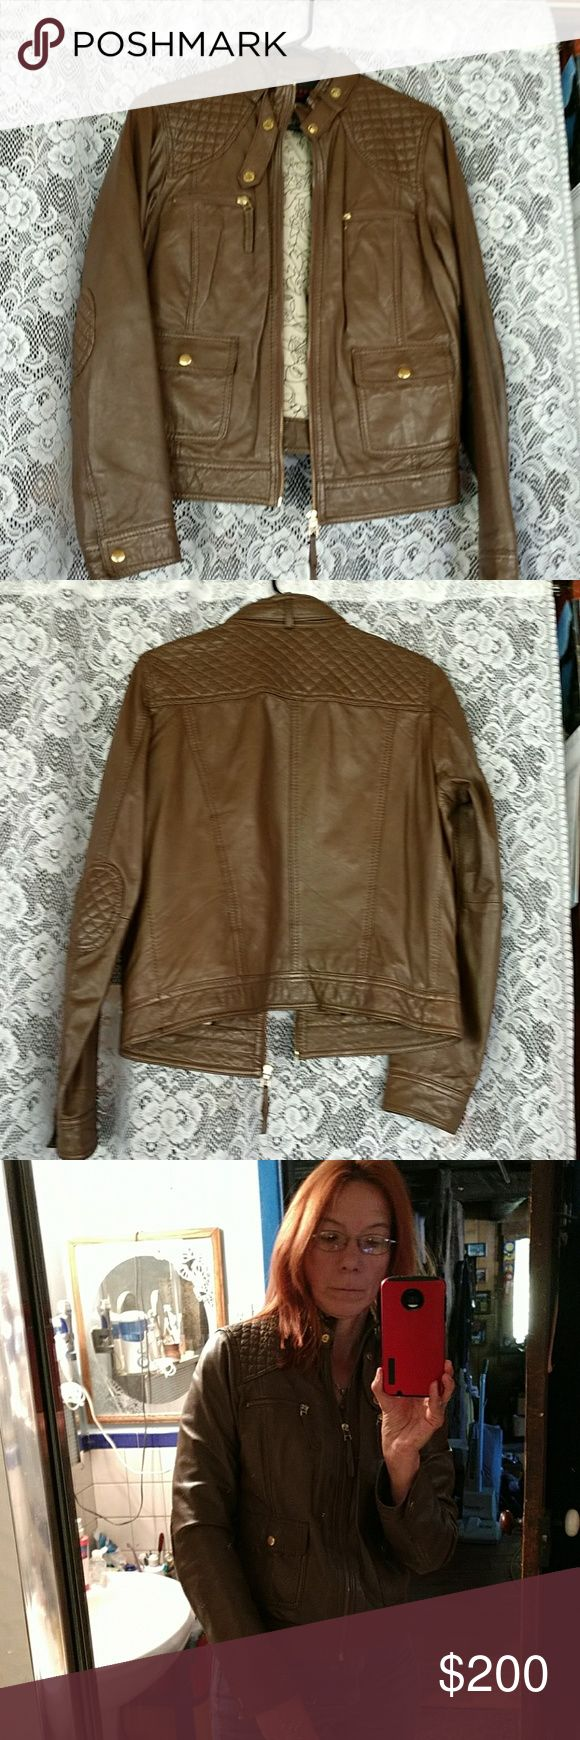 Oakwood fast label leather jacket Very, very nice  leather jacket from Oakwood. Has only worn a few times! All zippers and snaps work. Nice and warm. Size large but to me fits like a medium. Oakwood Jackets & Coats